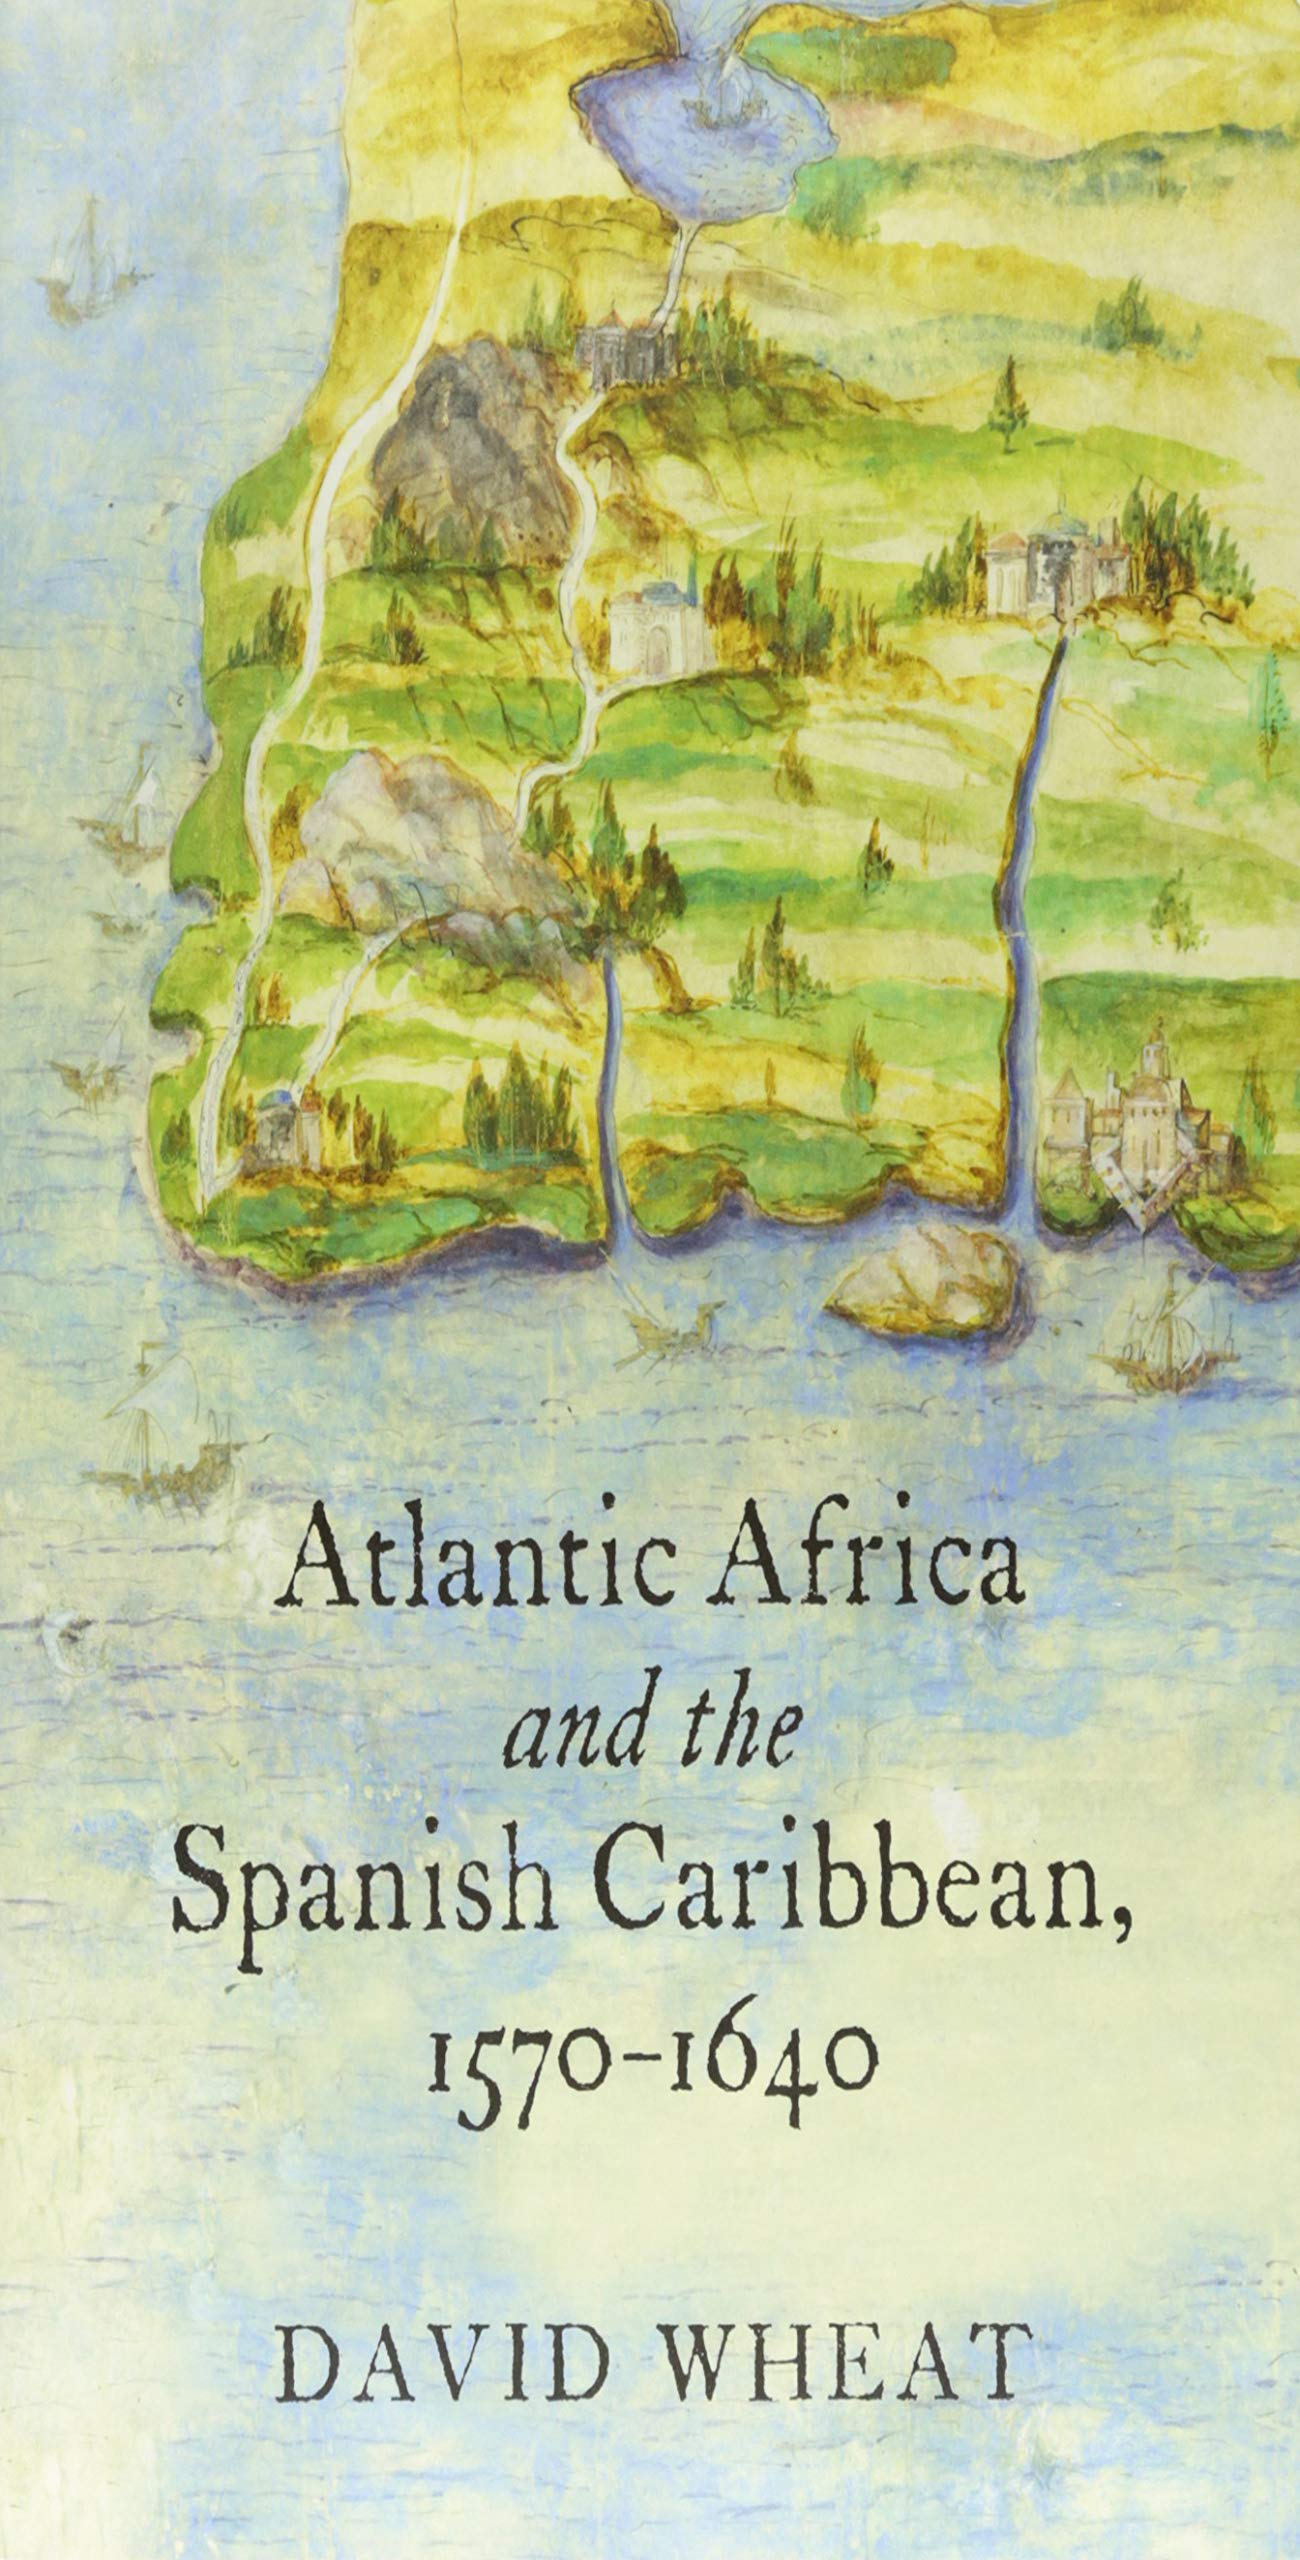 Atlantic Africa and the Spanish Caribbean, 1570-1640 (Published by the Omohundro Institute of Early American History and Culture and the University of North Carolina Press) pdf epub